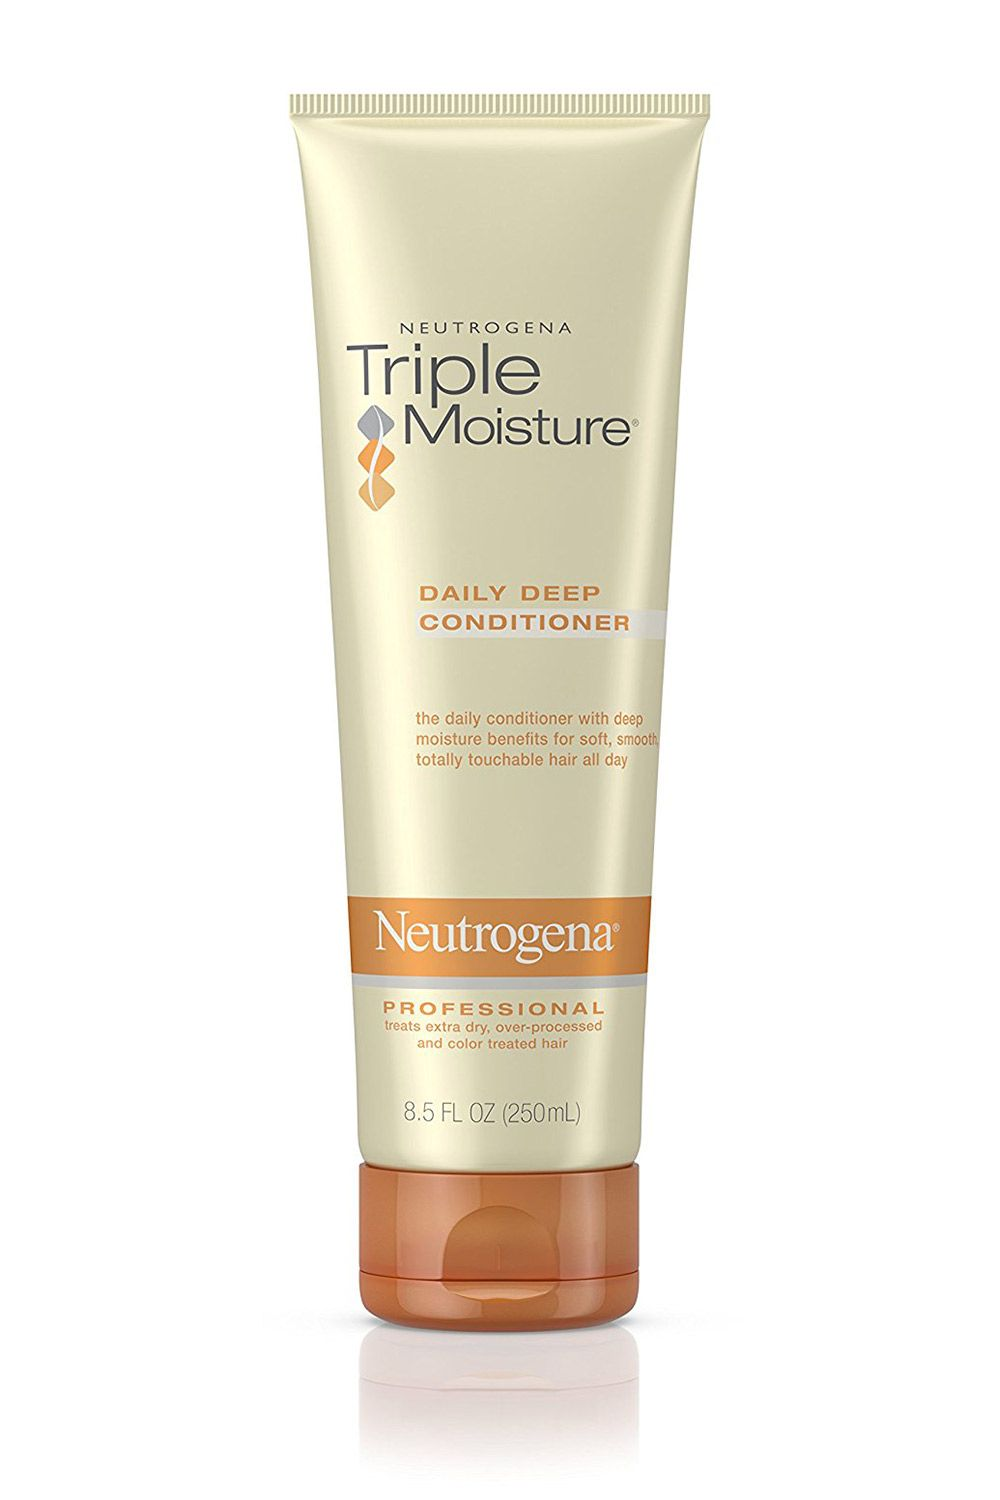 "<p>A cult-favorite for a reason, this creamy conditioner has just enough sweet almond oil and olive oil to deeply hydrate and soften hair, without feeling heavy or greasy after you rinse it out. </p><p><i data-redactor-tag=""i"">Neutrogena Triple Moisture Daily Deep Conditioner, $5</i></p><p><strong data-redactor-tag=""strong"">BUY IT: <a href=""https://www.walmart.com/ip/Neutrogena-Triple-Moisture-Daily-Deep-Conditioner-For-Dry-Hair-Moisturizing-8-5-Fl-Oz/10308652"">walmart.com</a>. </strong></p>"